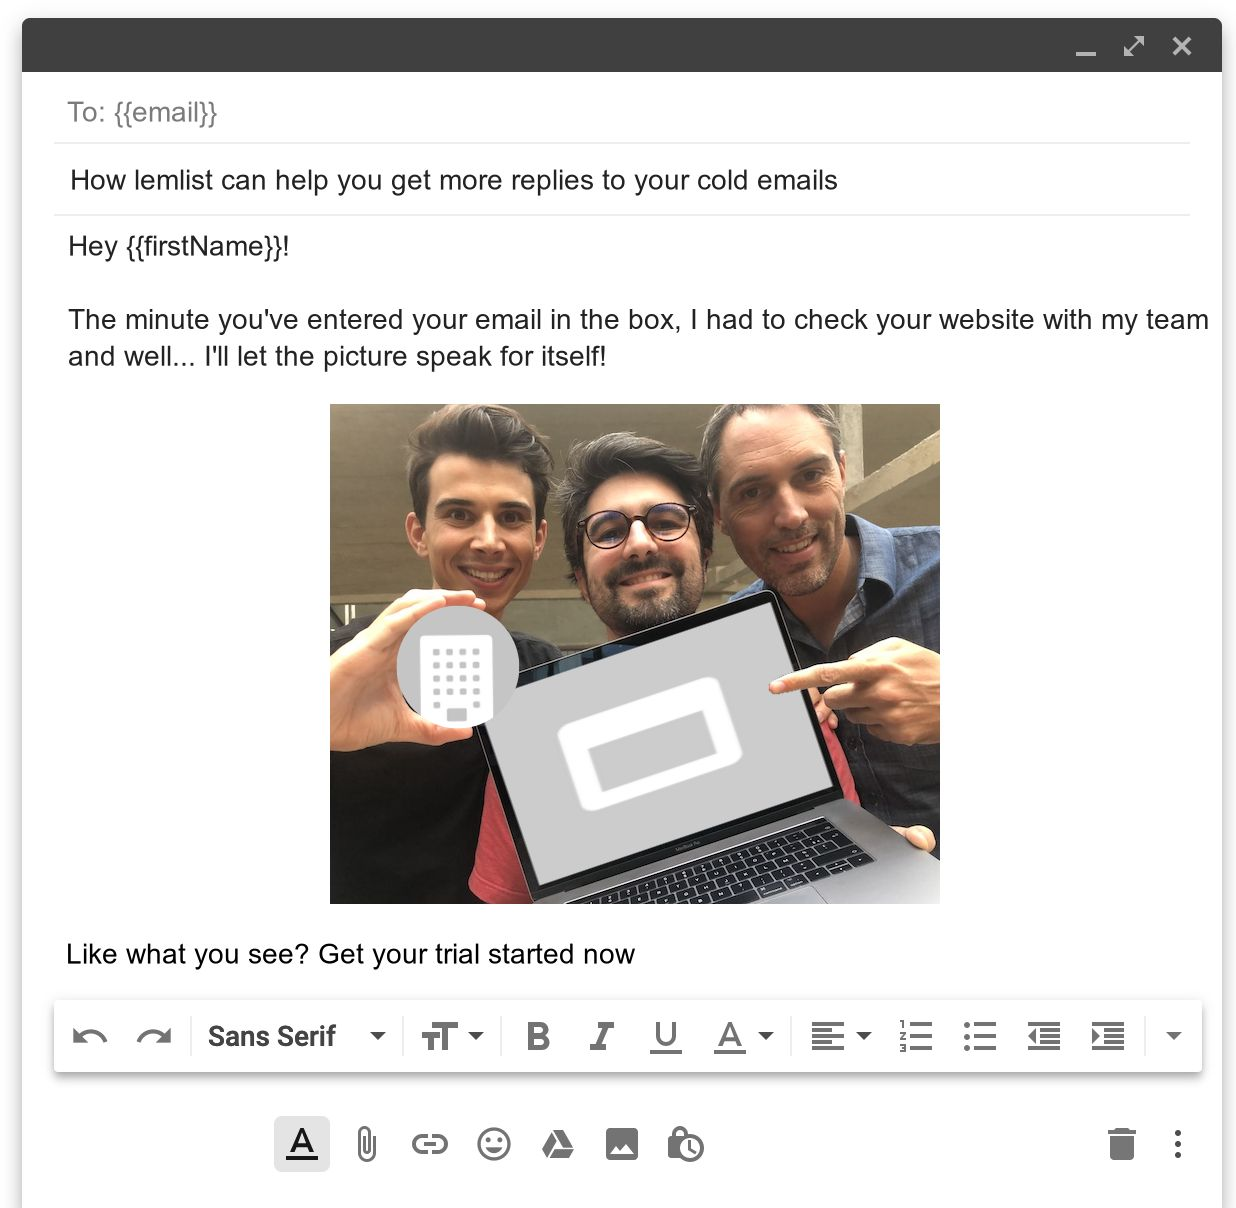 create hyper personalized emails using lemlist, include prospect pictures in the emails